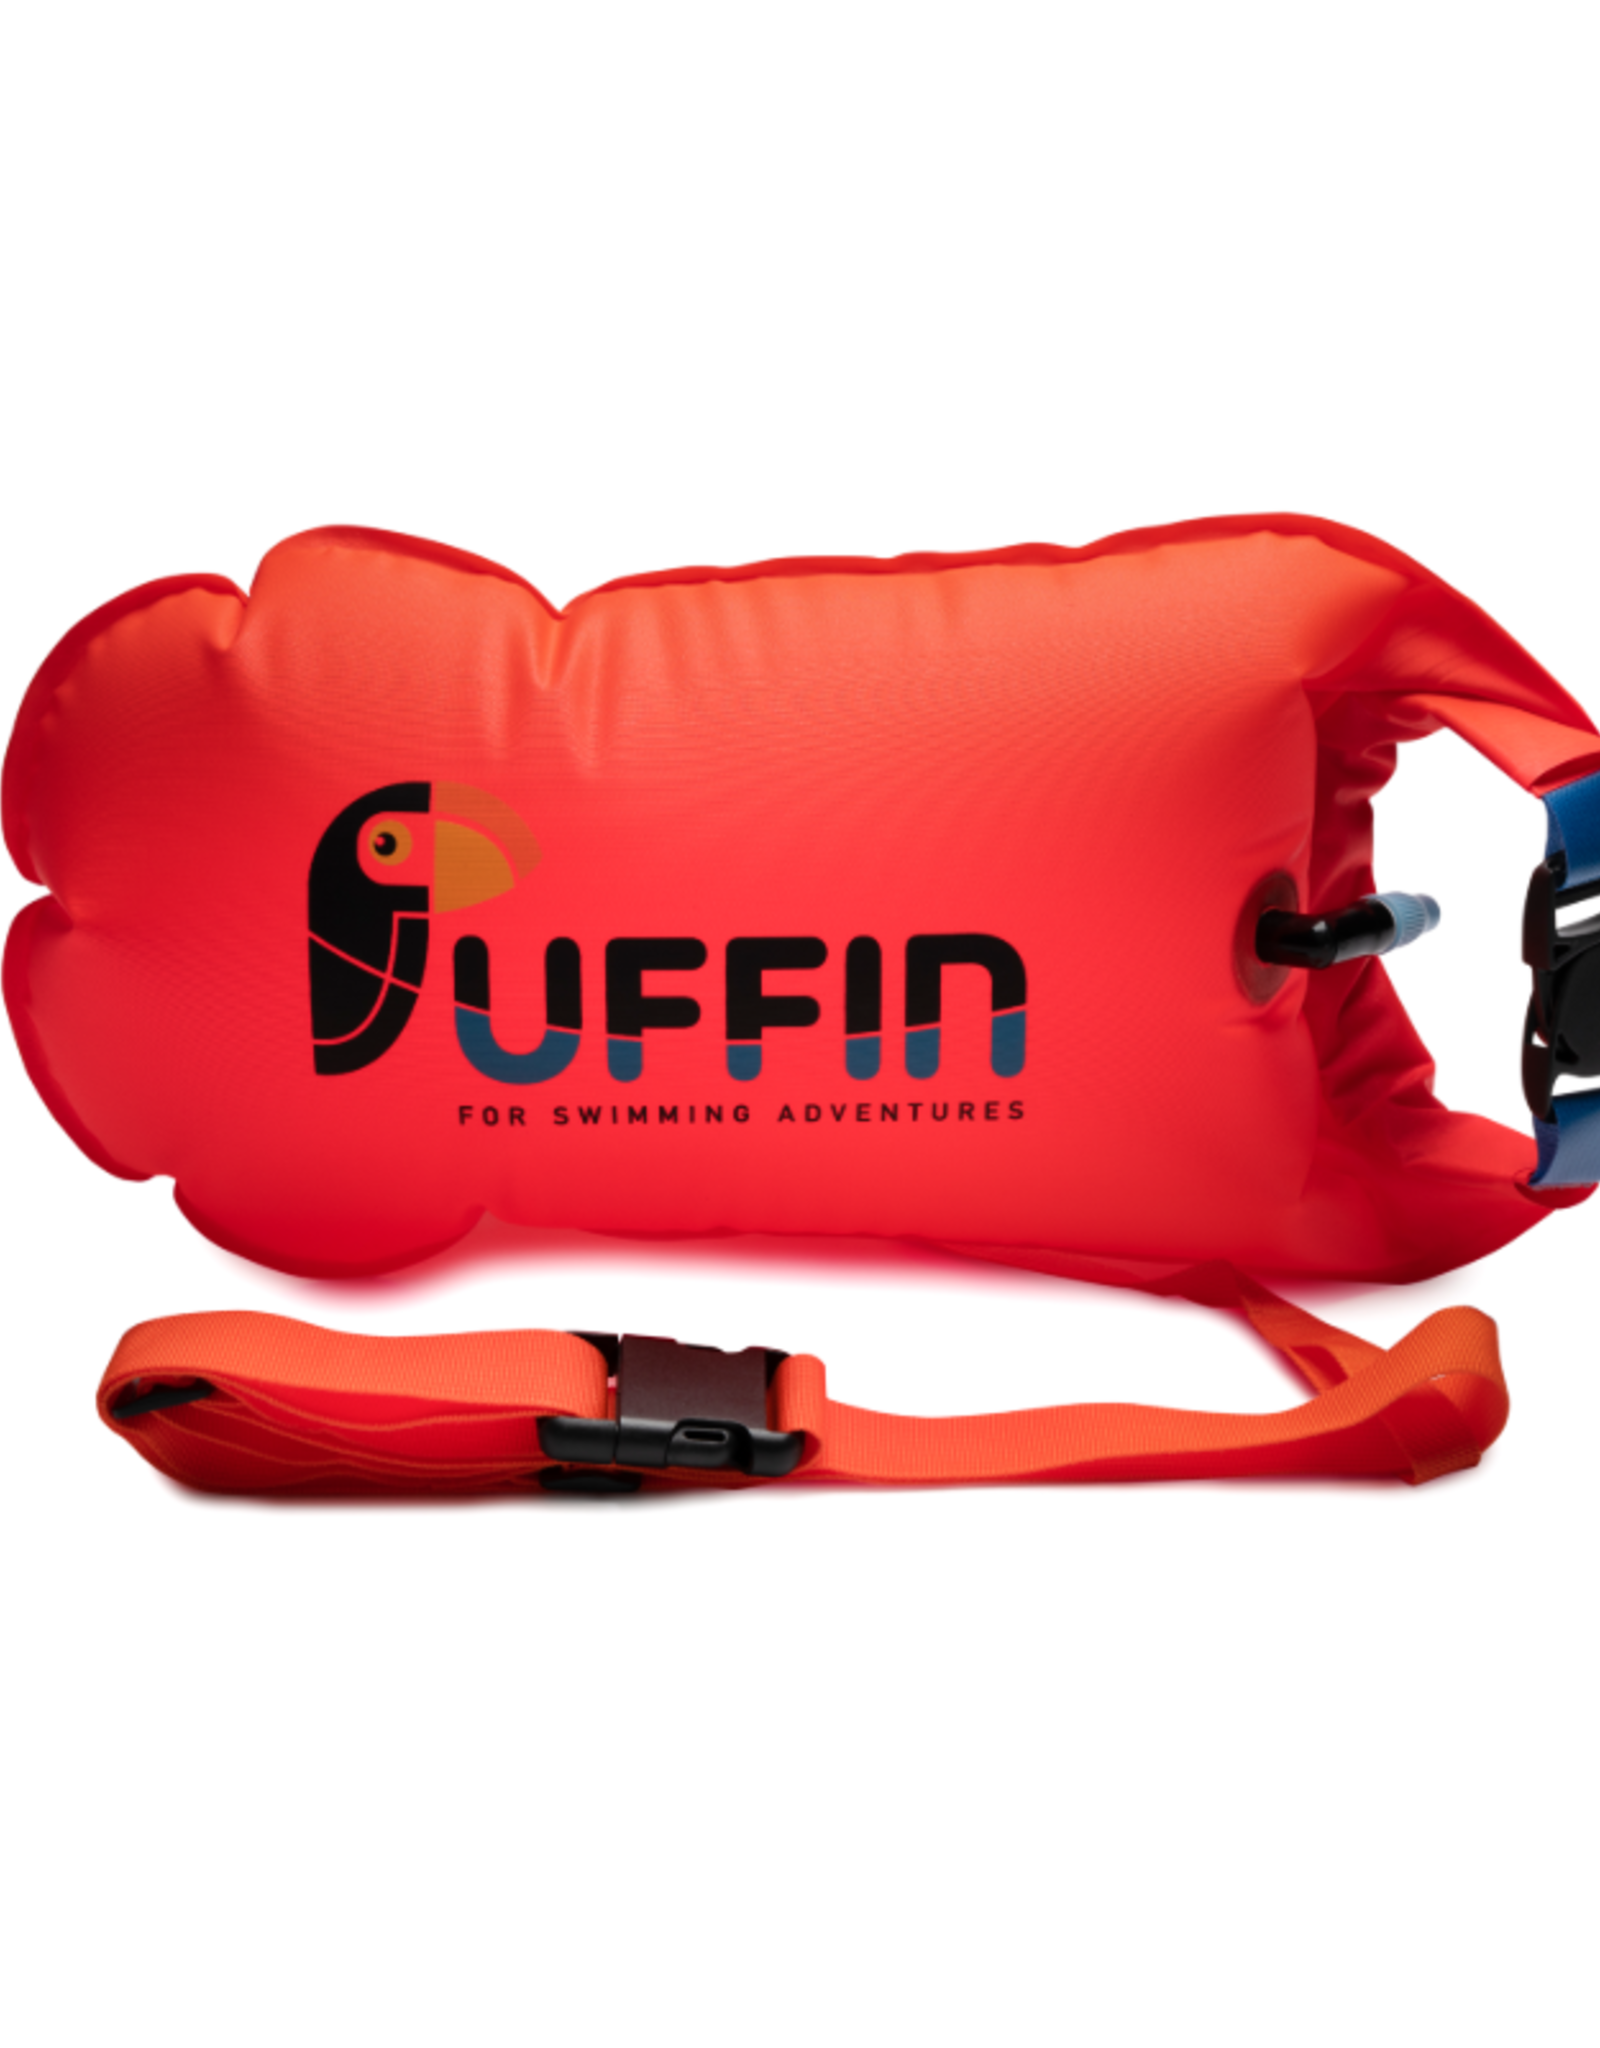 Puffin Puffin Billy Eco15 Drybag Towfloat